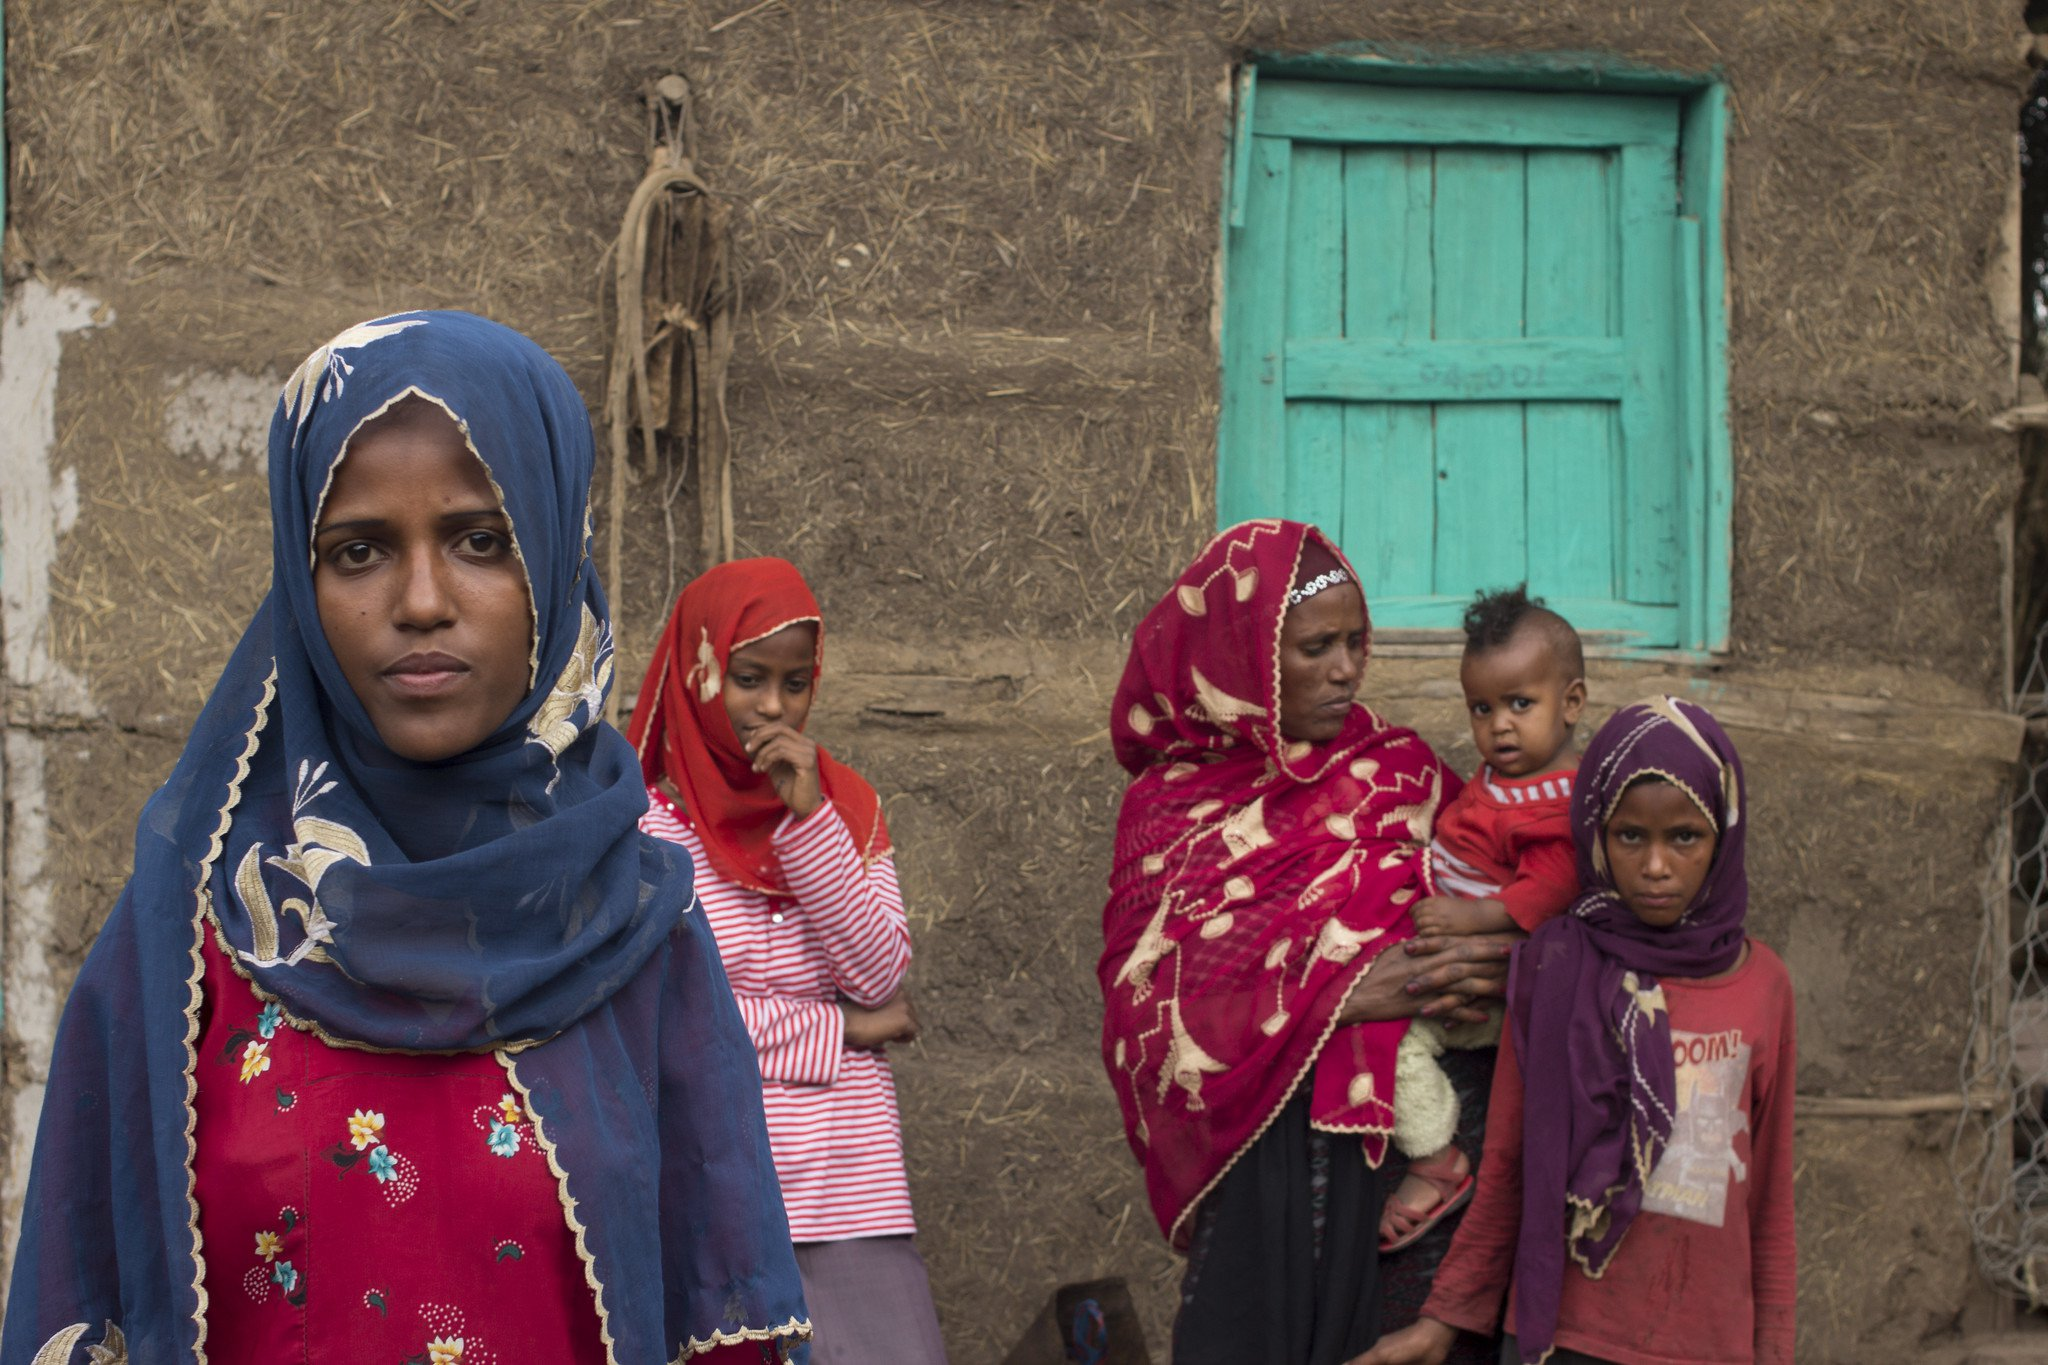 A girl and the family she supported with her earnings in Saudi Arabia following an early marriage. The family now live in Hara, Amhara Region, Ethiopia